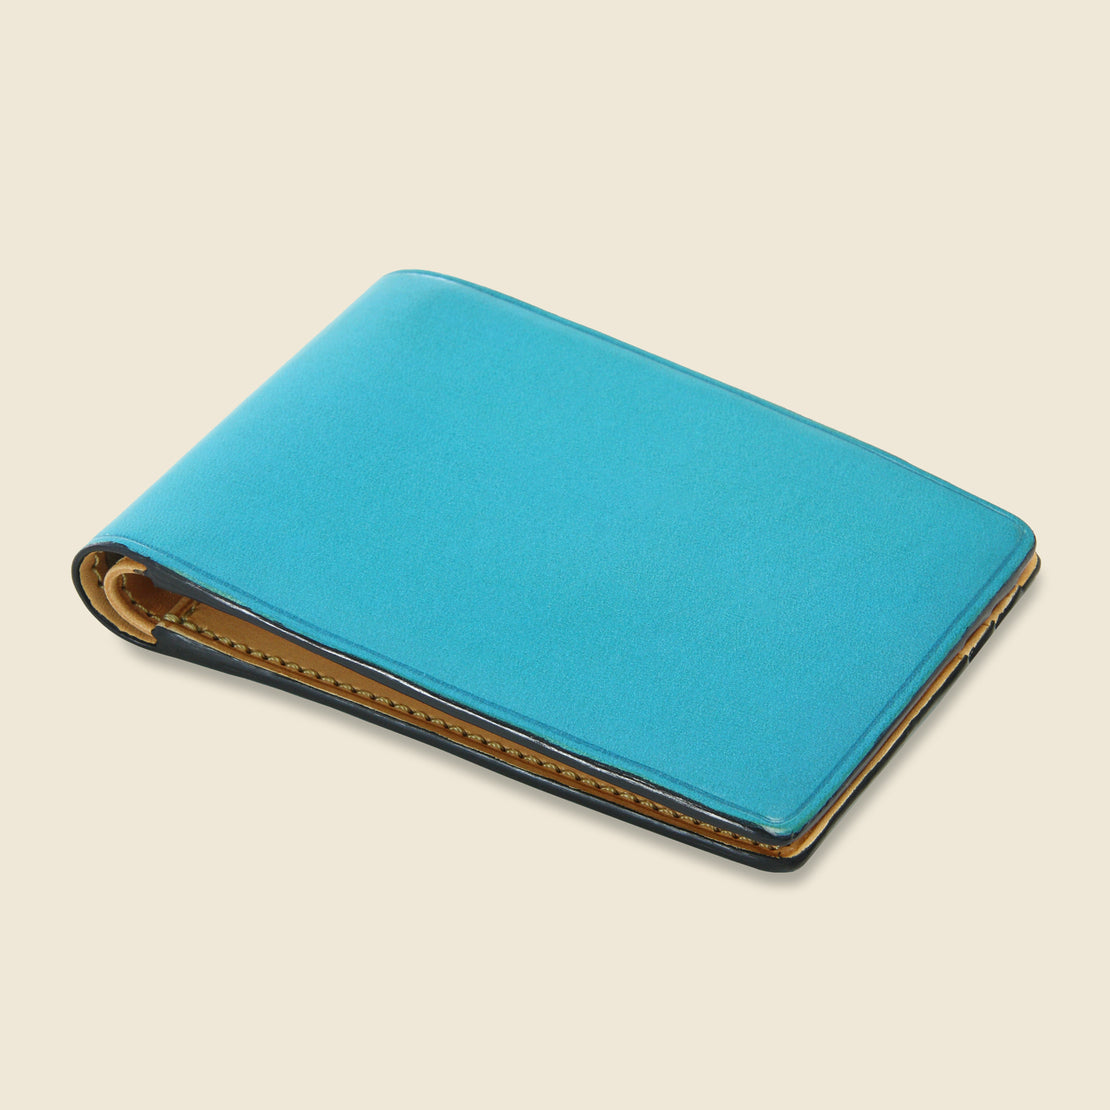 Small Bi-Fold Wallet - Cadet Blue - Il Bussetto - STAG Provisions - Accessories - Wallets